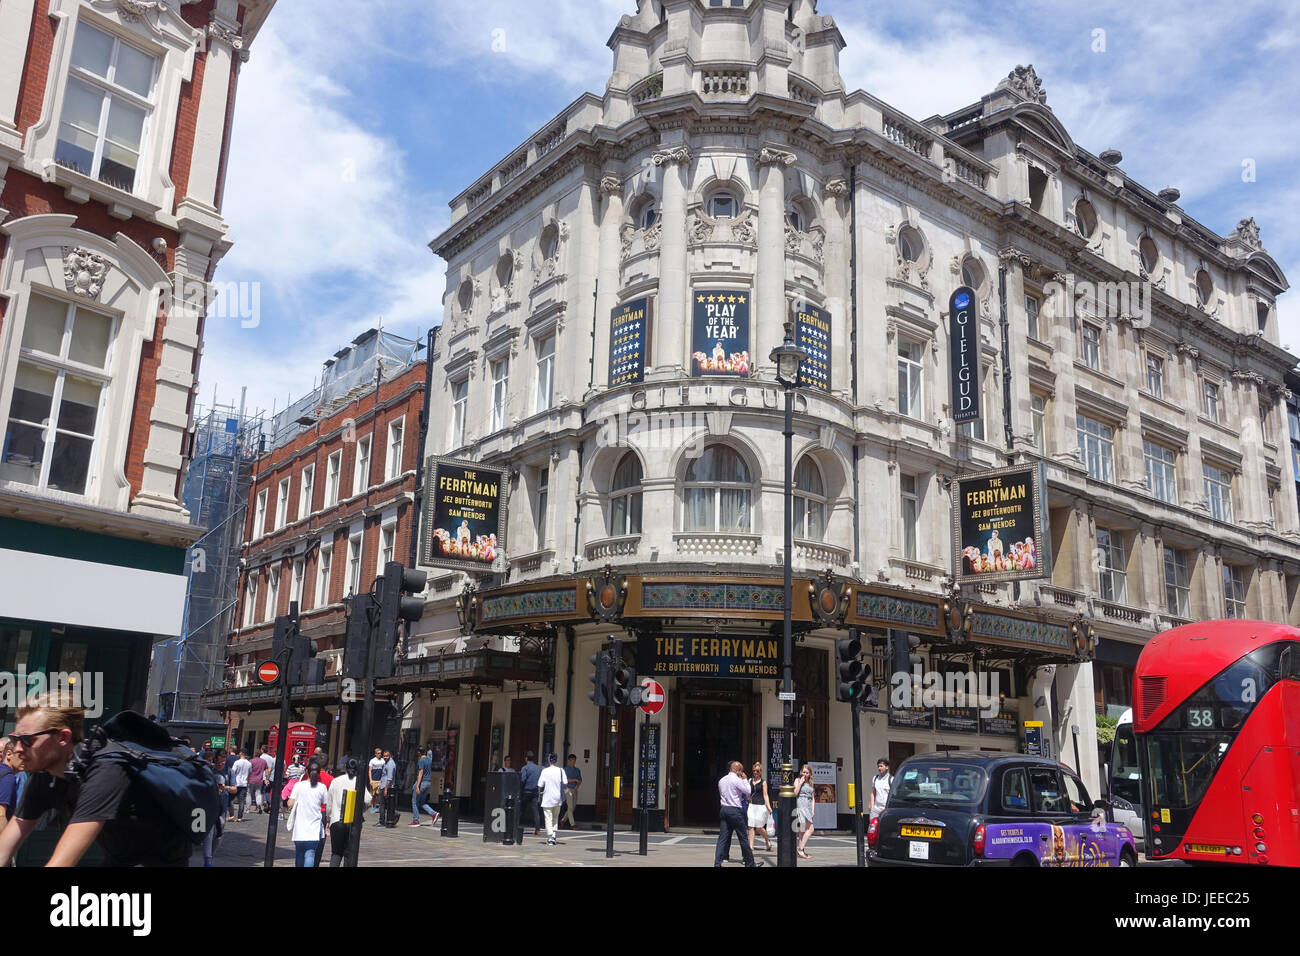 A front view of The Gielgud Theatre in Shaftesbury Avenue in London UK - Stock Image